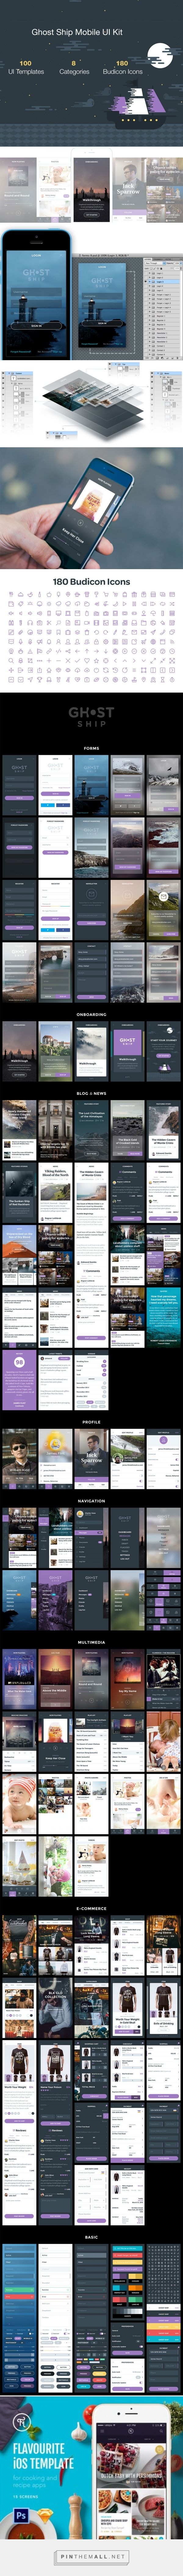 Recursos: webGhost Ship Mobile UI Kit | Visual Hierarchy - created via http://pinthemall.net